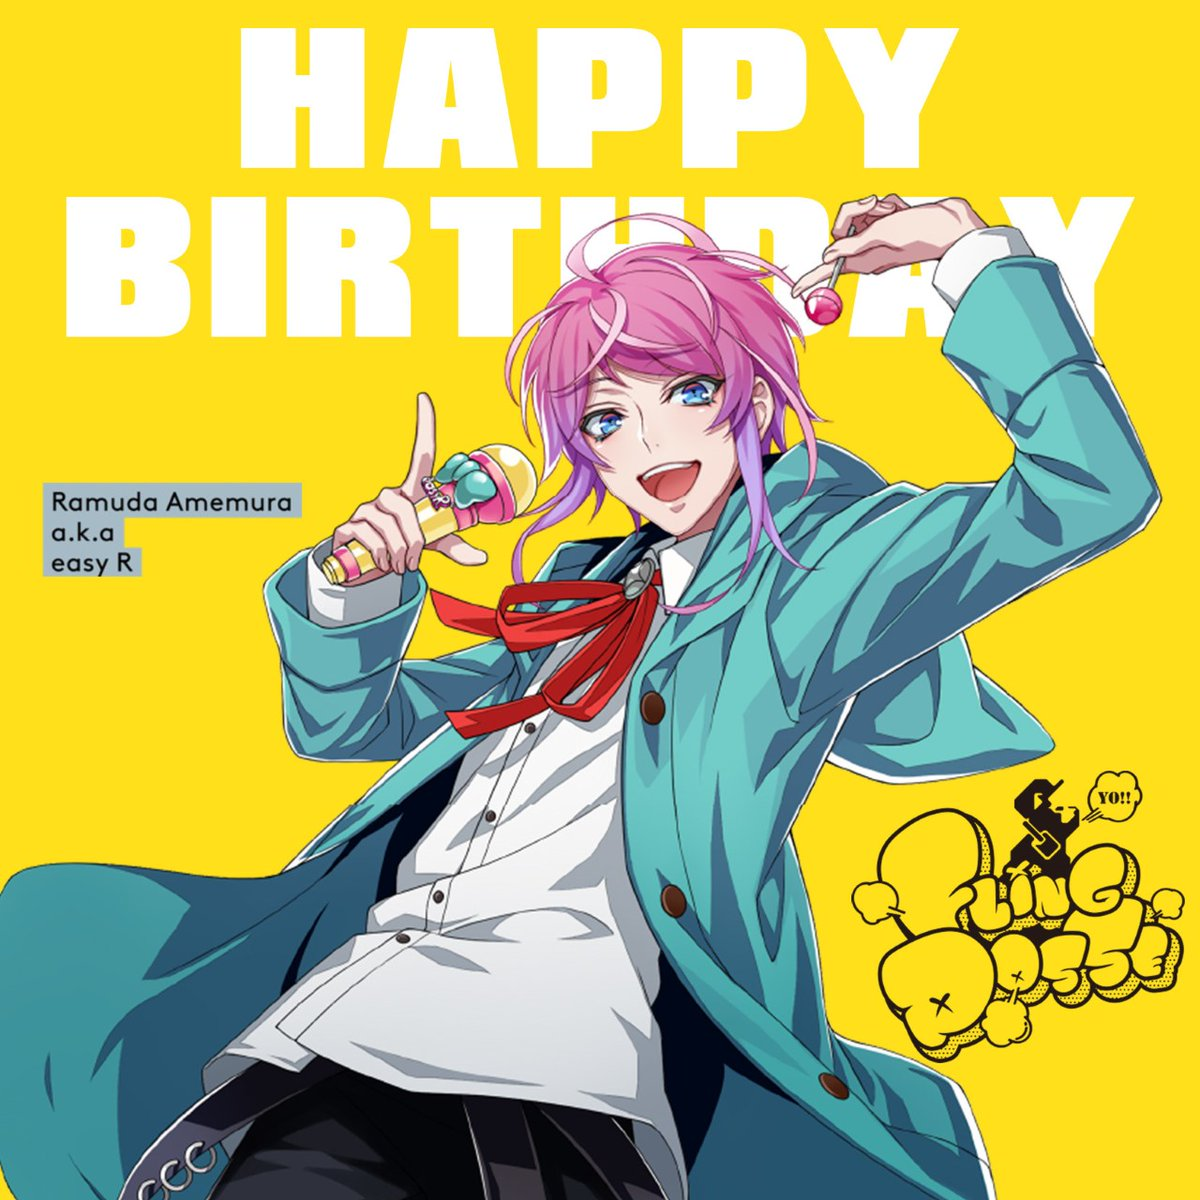 HAPPY BIRTHDAY  TO  RAMUDA!!!!!!   \ \ \ \②.⑭ / / / /   『R A M U D and A Who's that? 乱数 オネーさーん またゴハンいこー』 youtu.be/tLzcjkkdD-c